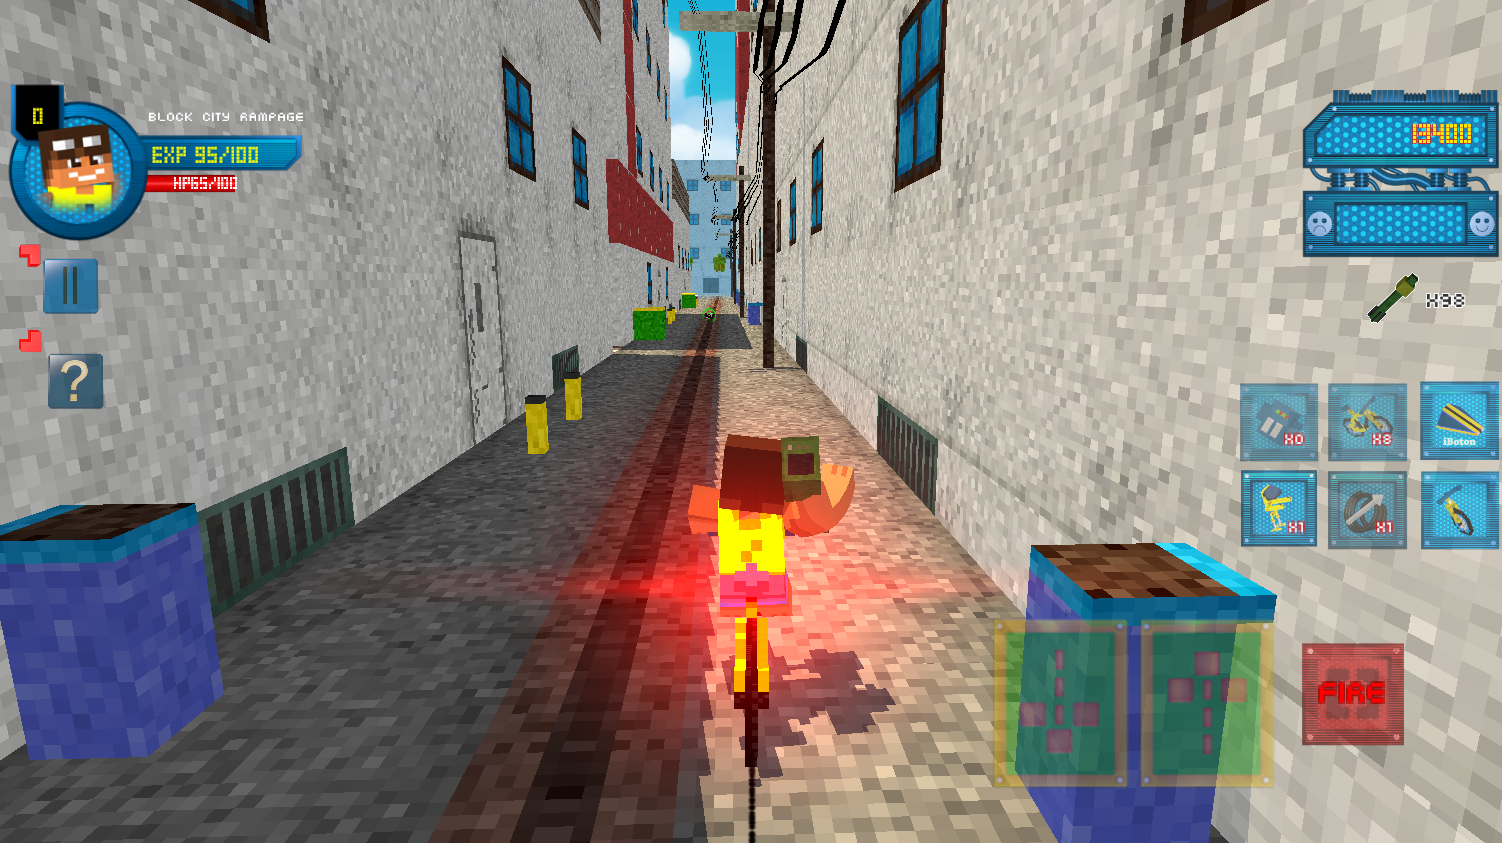 Block City Rampage Screenshot 2